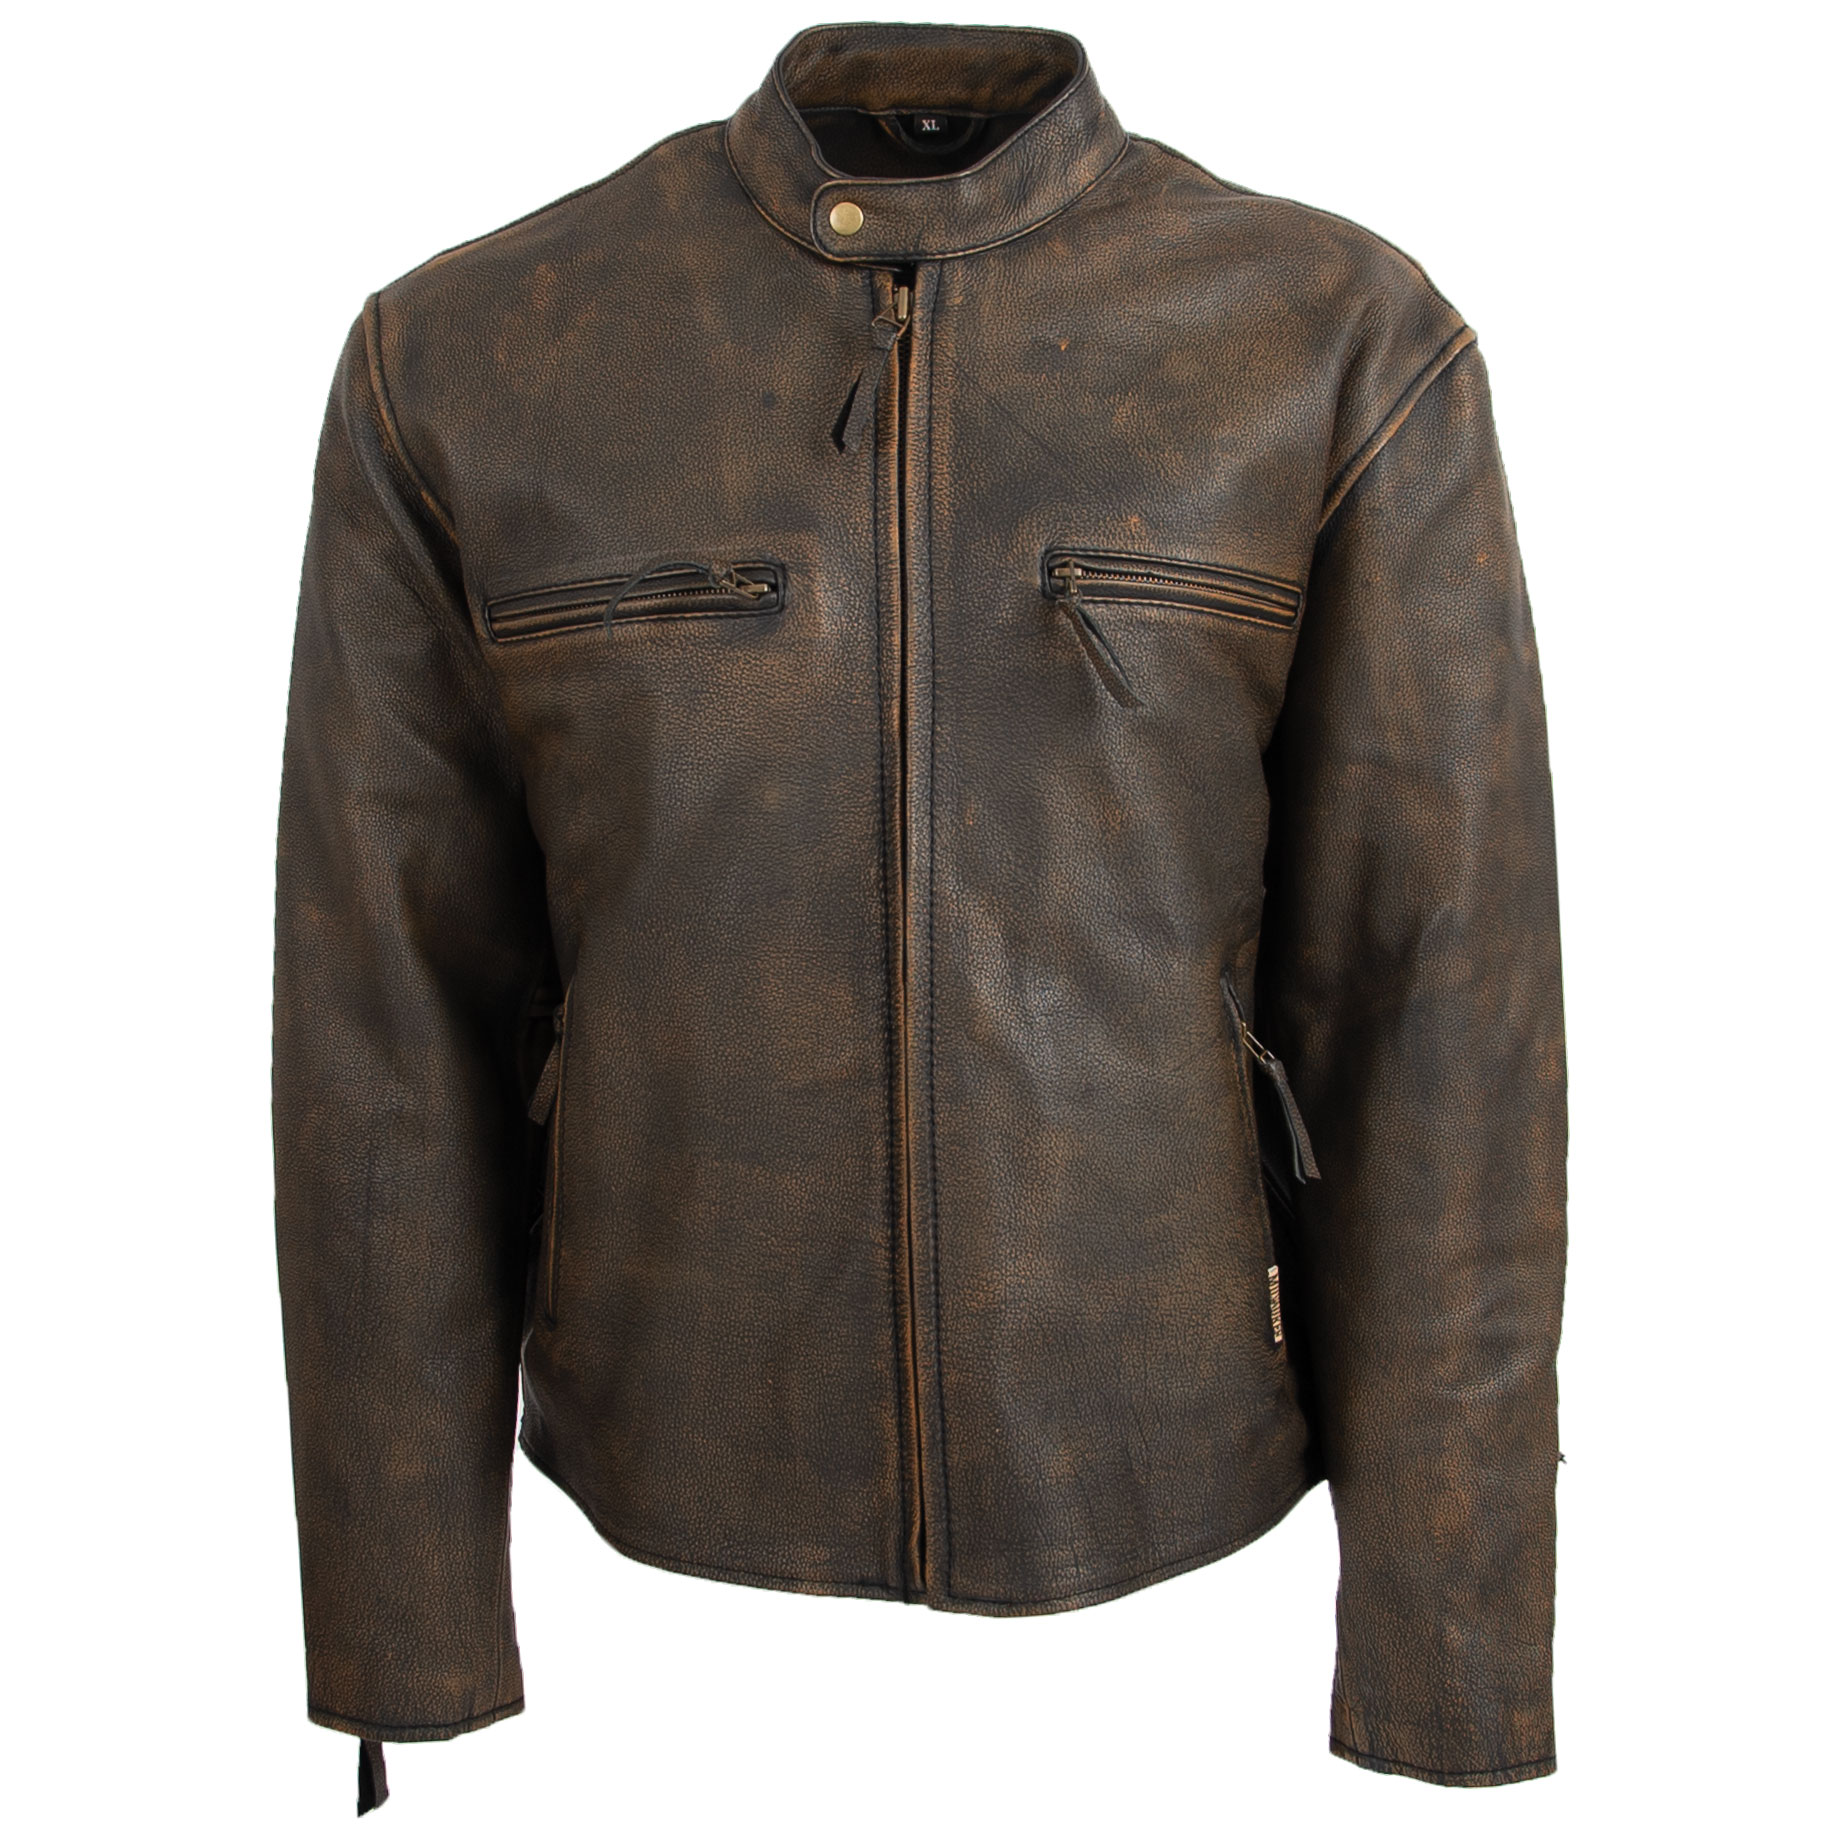 Milwaukee Motorcycle Clothing Co. Men's Heritage Brown Leather Jacket